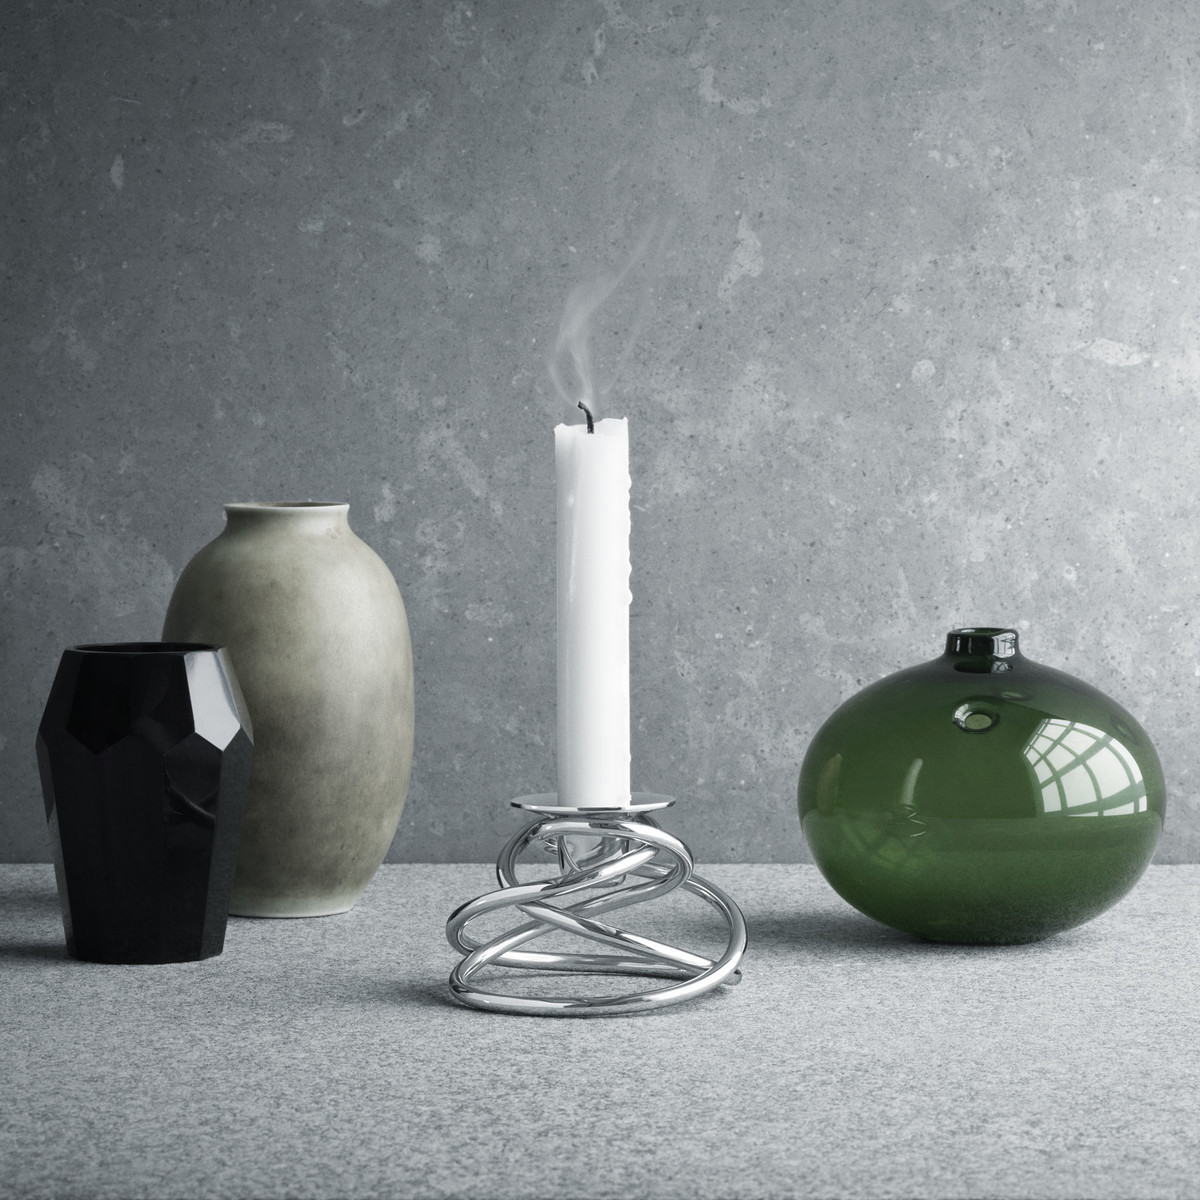 Georg Jensen Living Vase Of Glow Candleholder by Georg Jensen In the Shop Regarding Georg Jensen Glow Candleholder with Vases